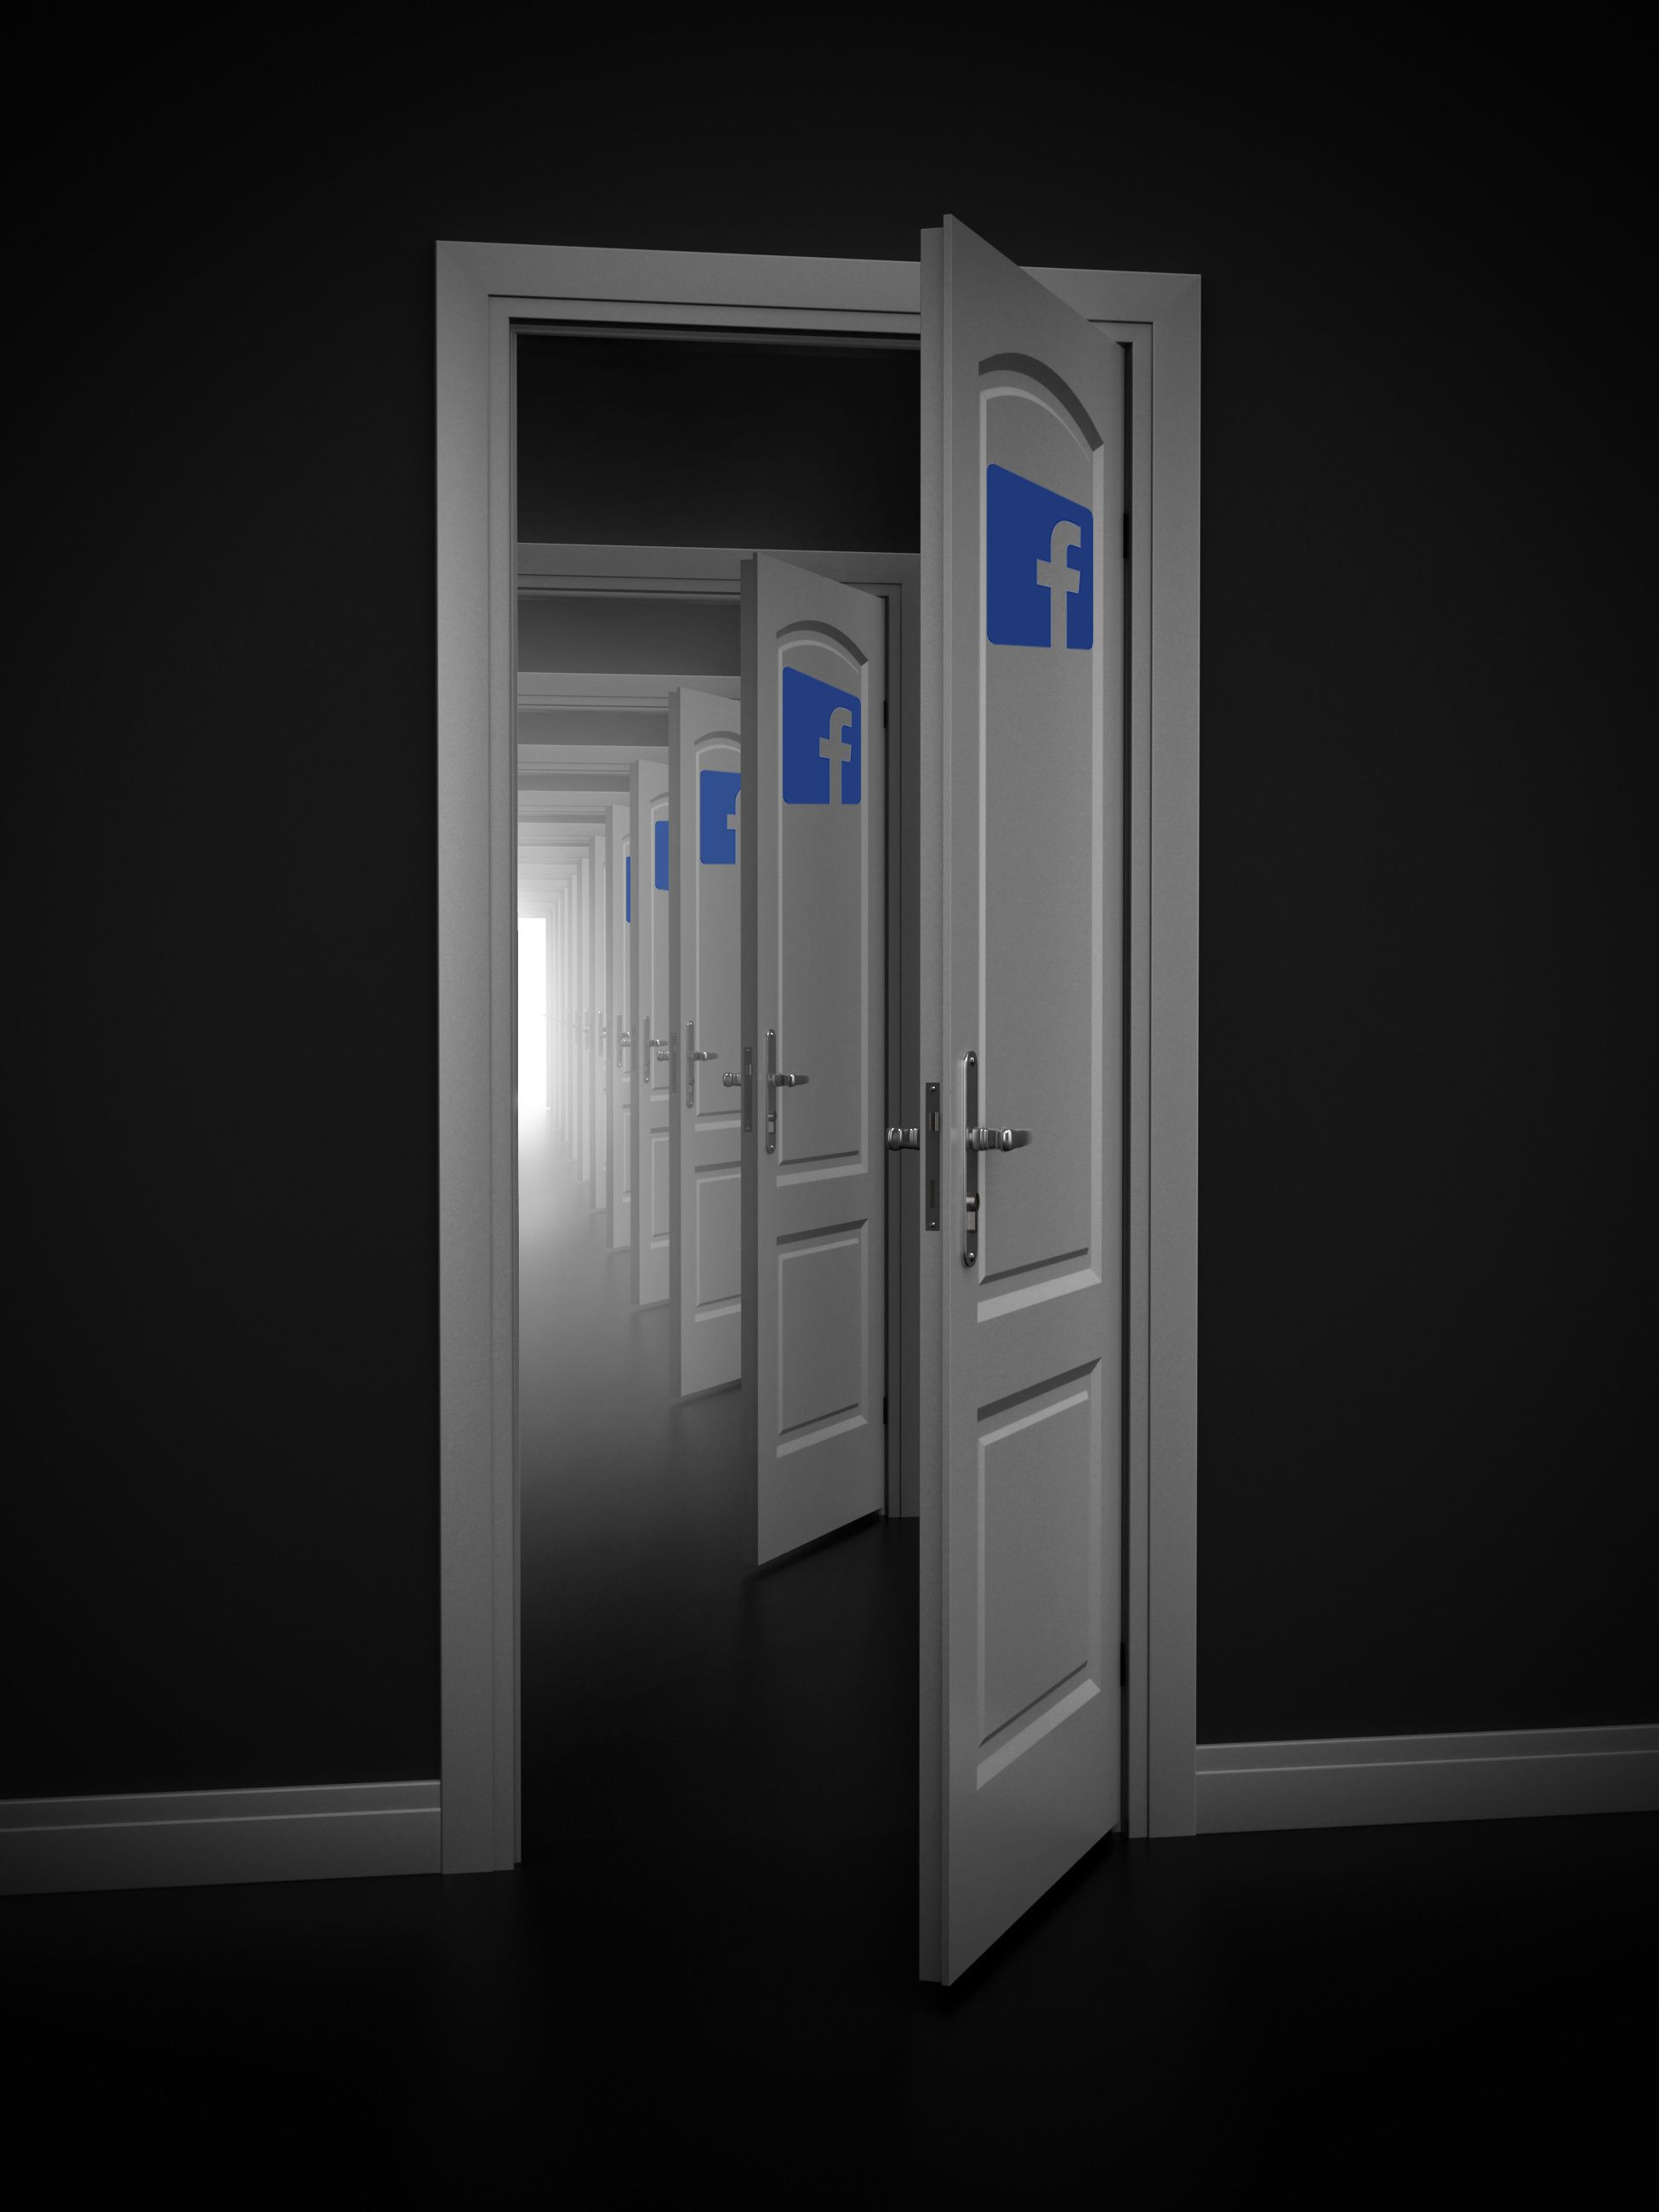 As Facebook becomes harder to escape, it becomes easier to